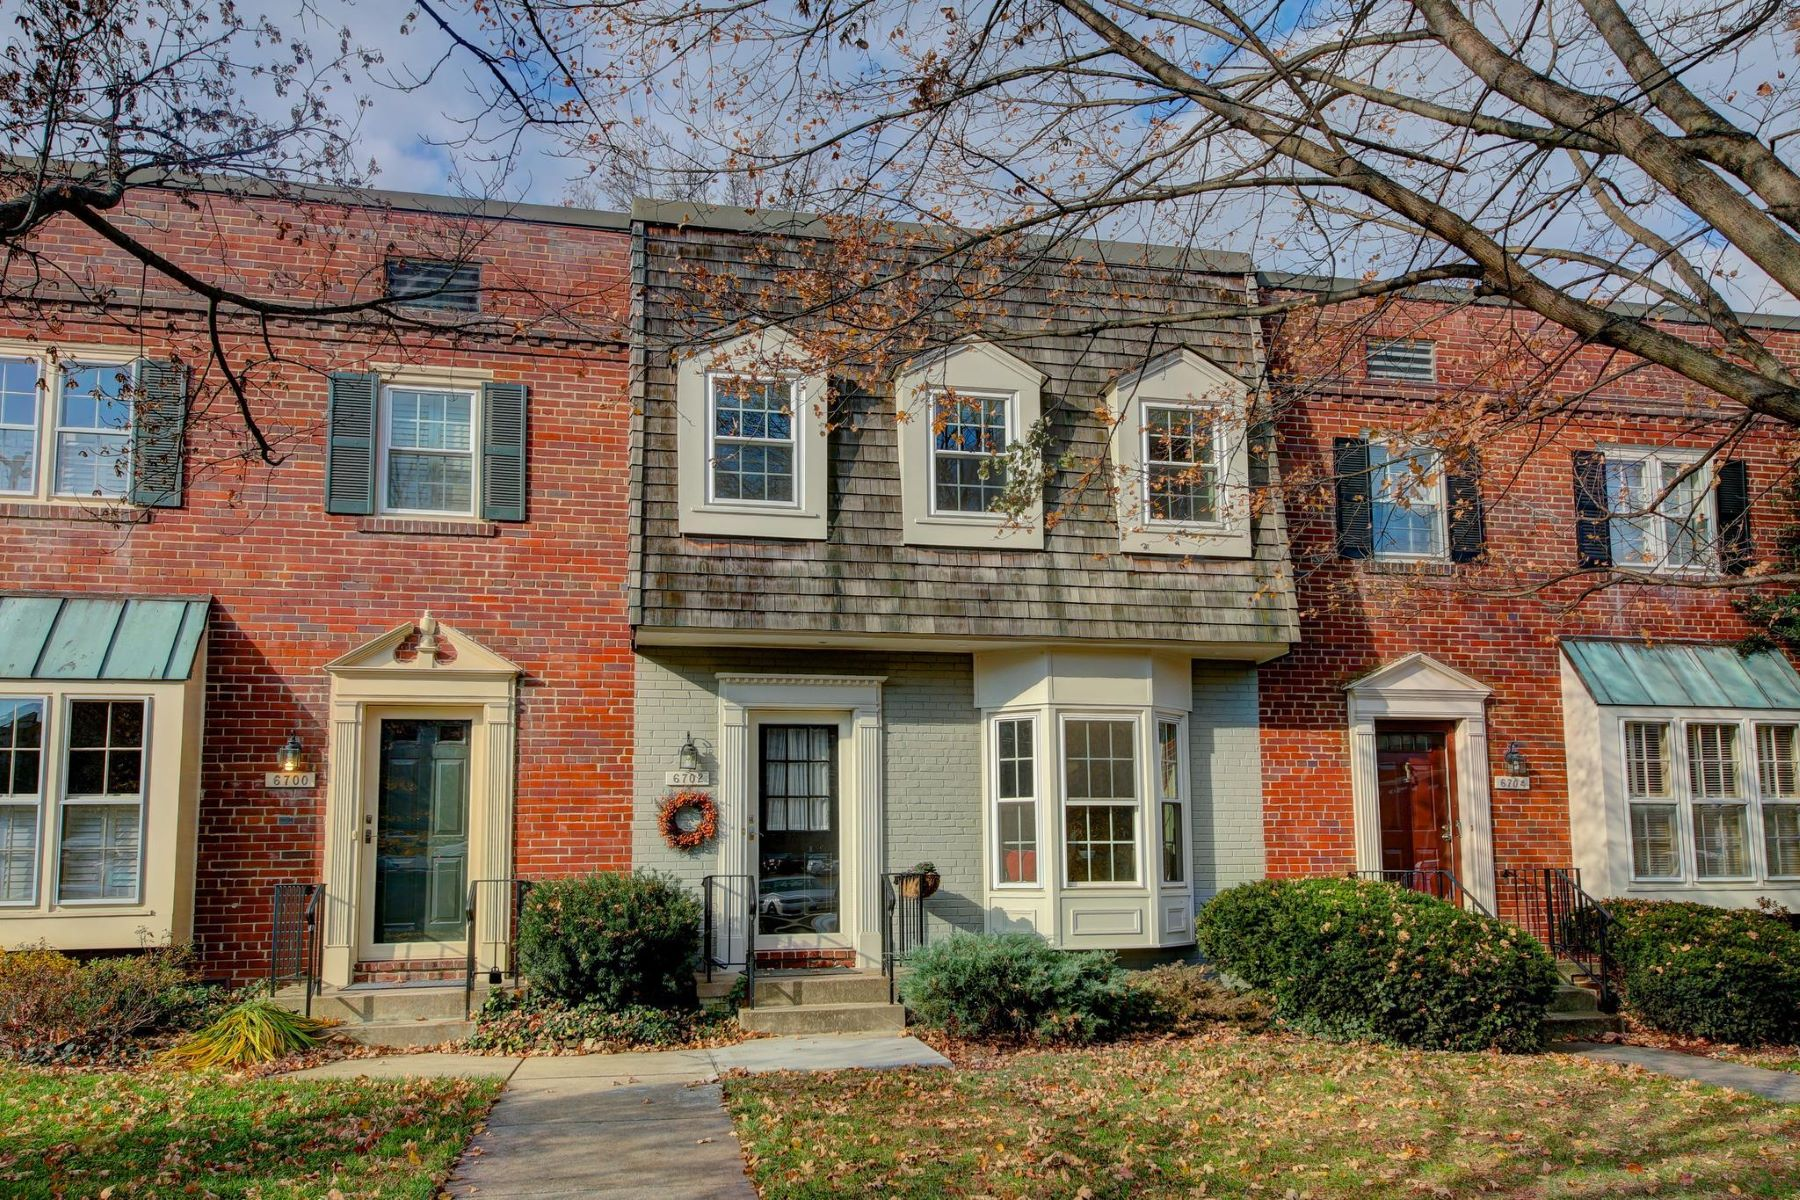 Condominium for Rent at 6702 Offutt Ln #196 6702 Offutt Ln #196 Chevy Chase, Maryland 20815 United States